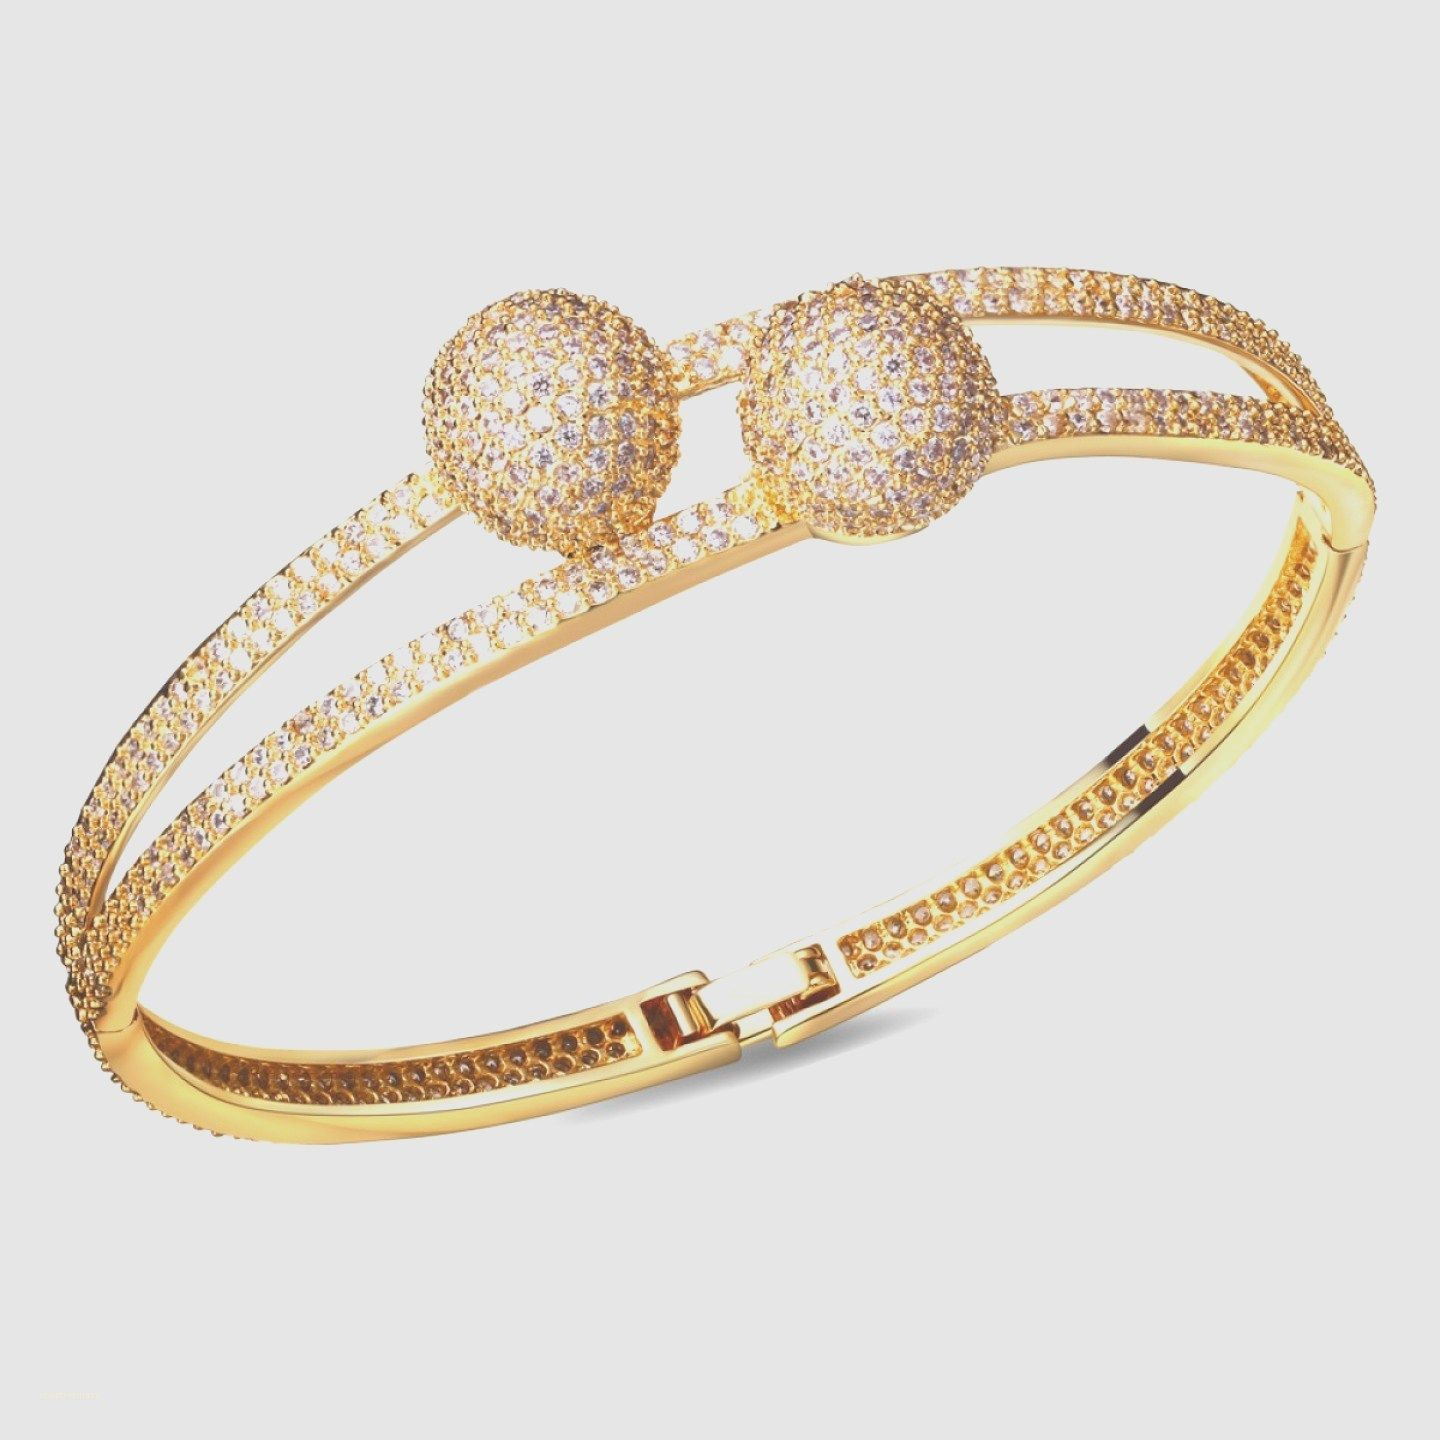 her crystal joudoo original bangle platinum hand bracelet diamond clover design leaf chain four gold for